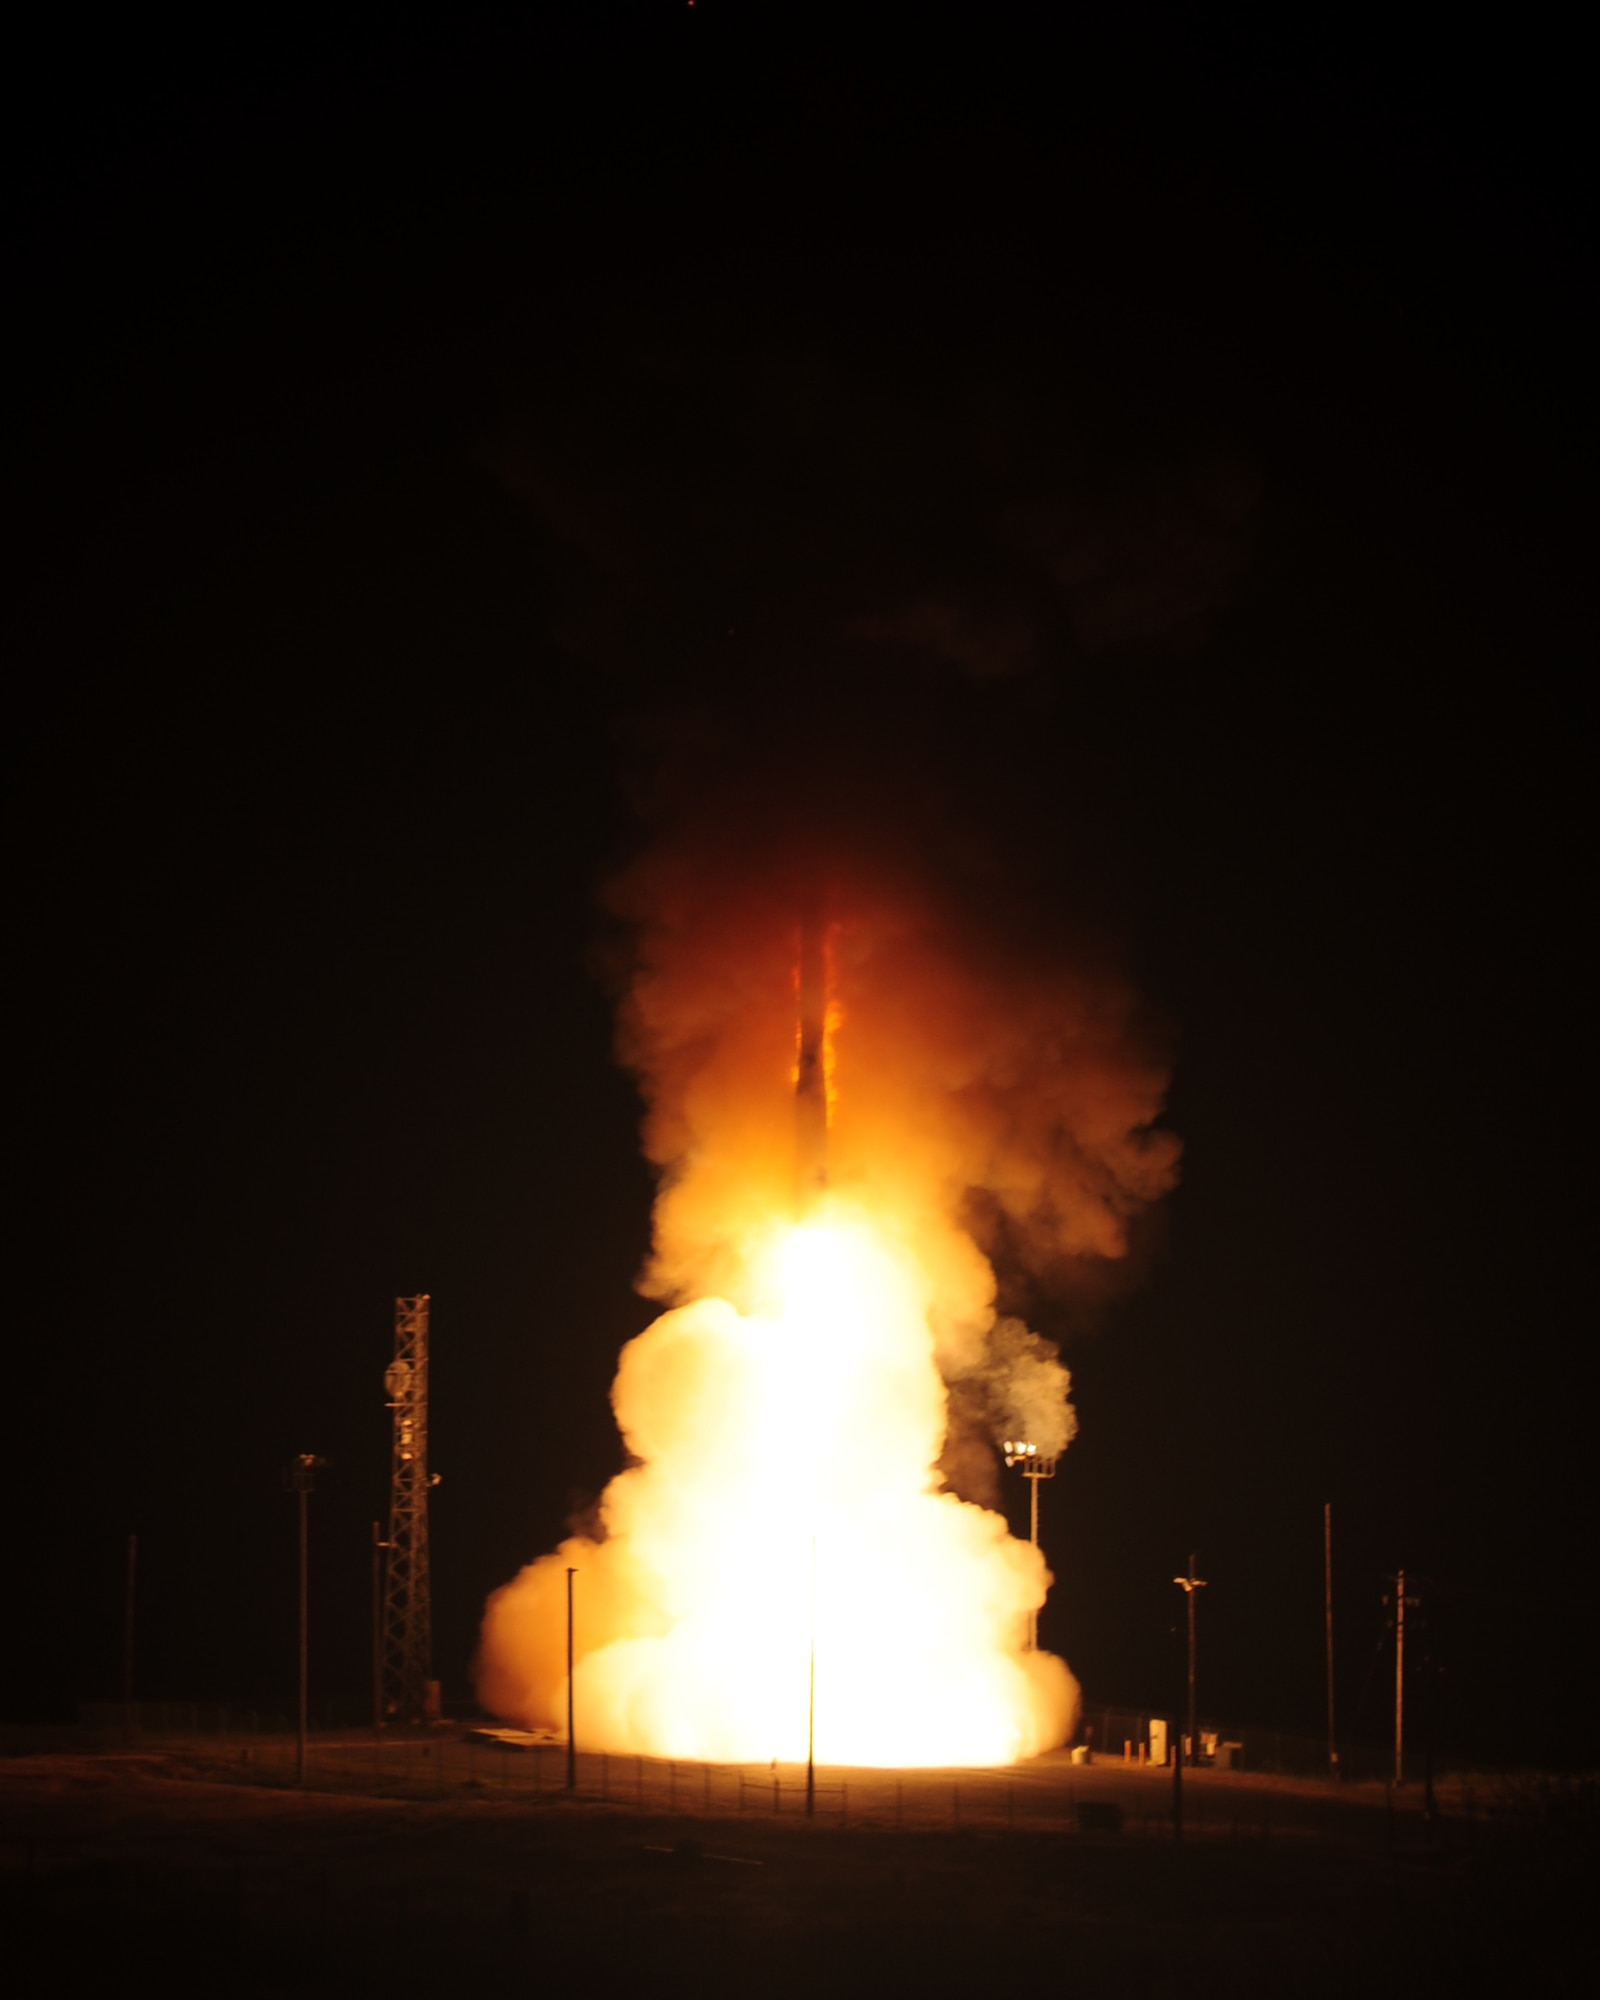 An unarmed LGM-30G Minuteman III intercontinental ballistic missile launches March 23, 2015, at Vandenberg Air Force Base, Calif. The missile was randomly selected from F. E. Warren AFB, Wyo., as a part of the system's operational test and evaluation program, which provides valuable data to evaluators and validates the reliability of the ICBM fleet. (U.S. Air Force photo/Joe Davila)